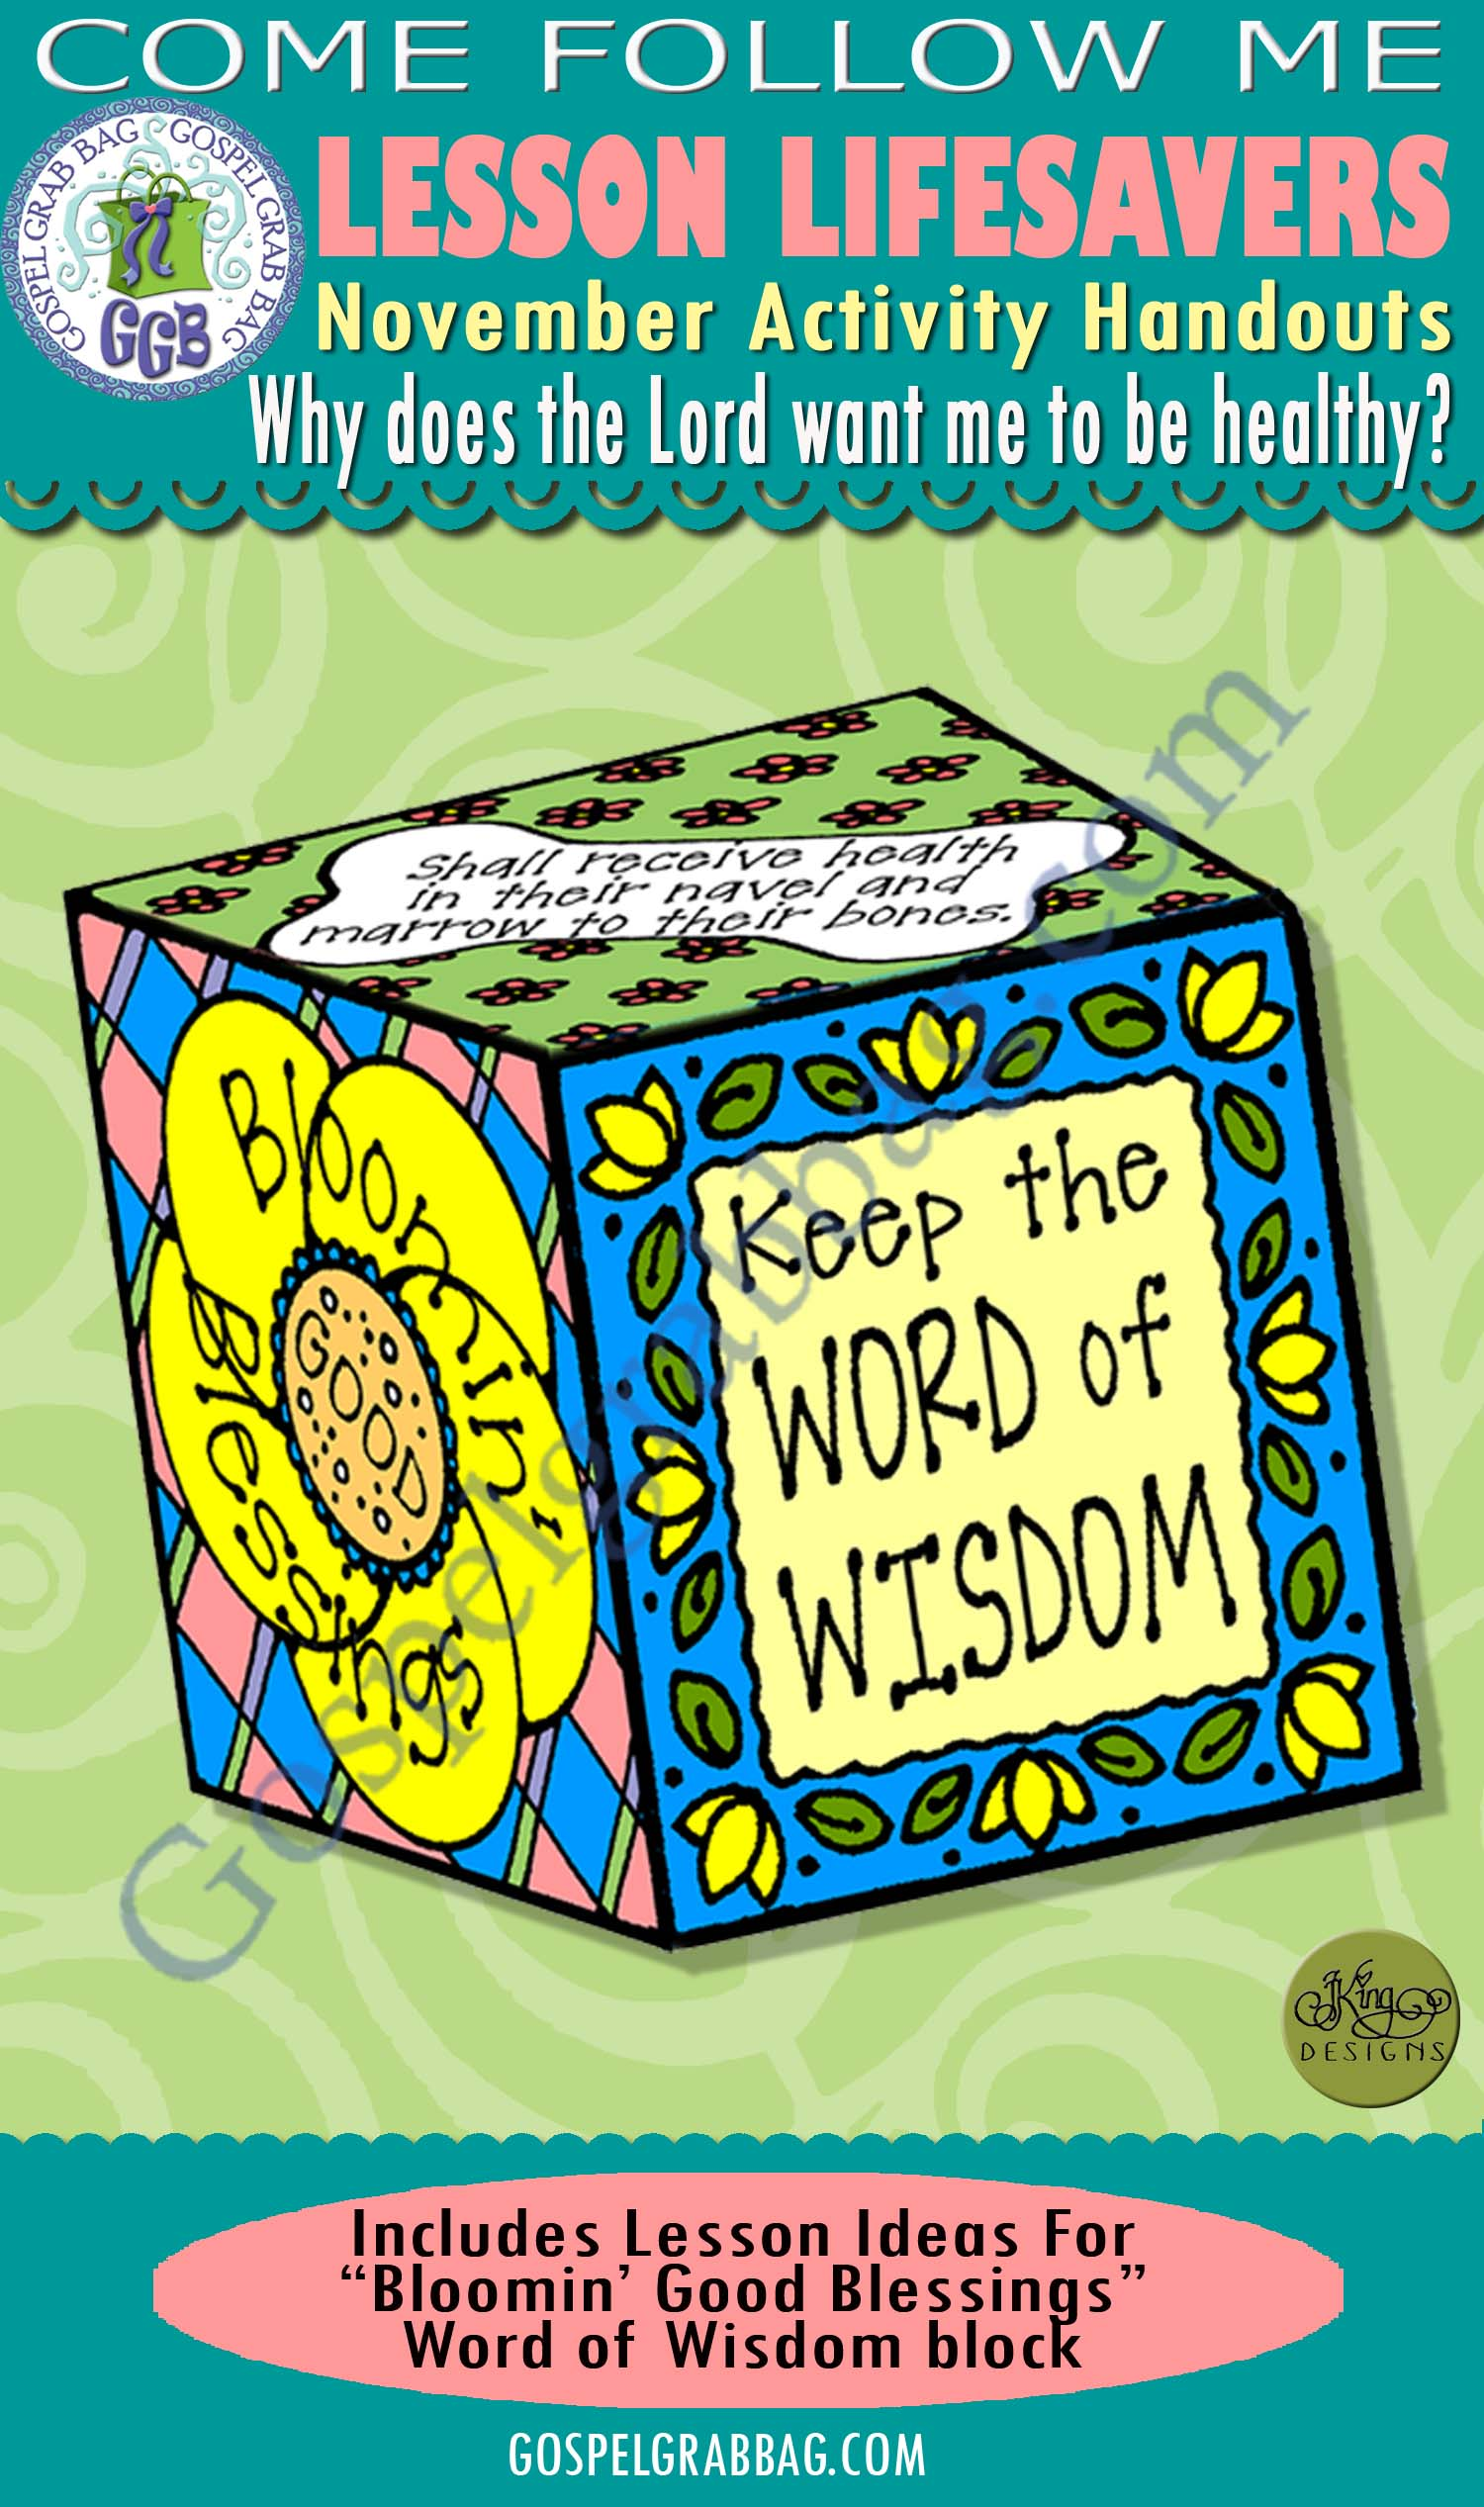 "$1.75 November Lesson 5 - Come Follow Me ""Why does the Lord want me to be healthy?"" ACTIVITY: Bloomin' Good Blessings - Word of Wisdom block"